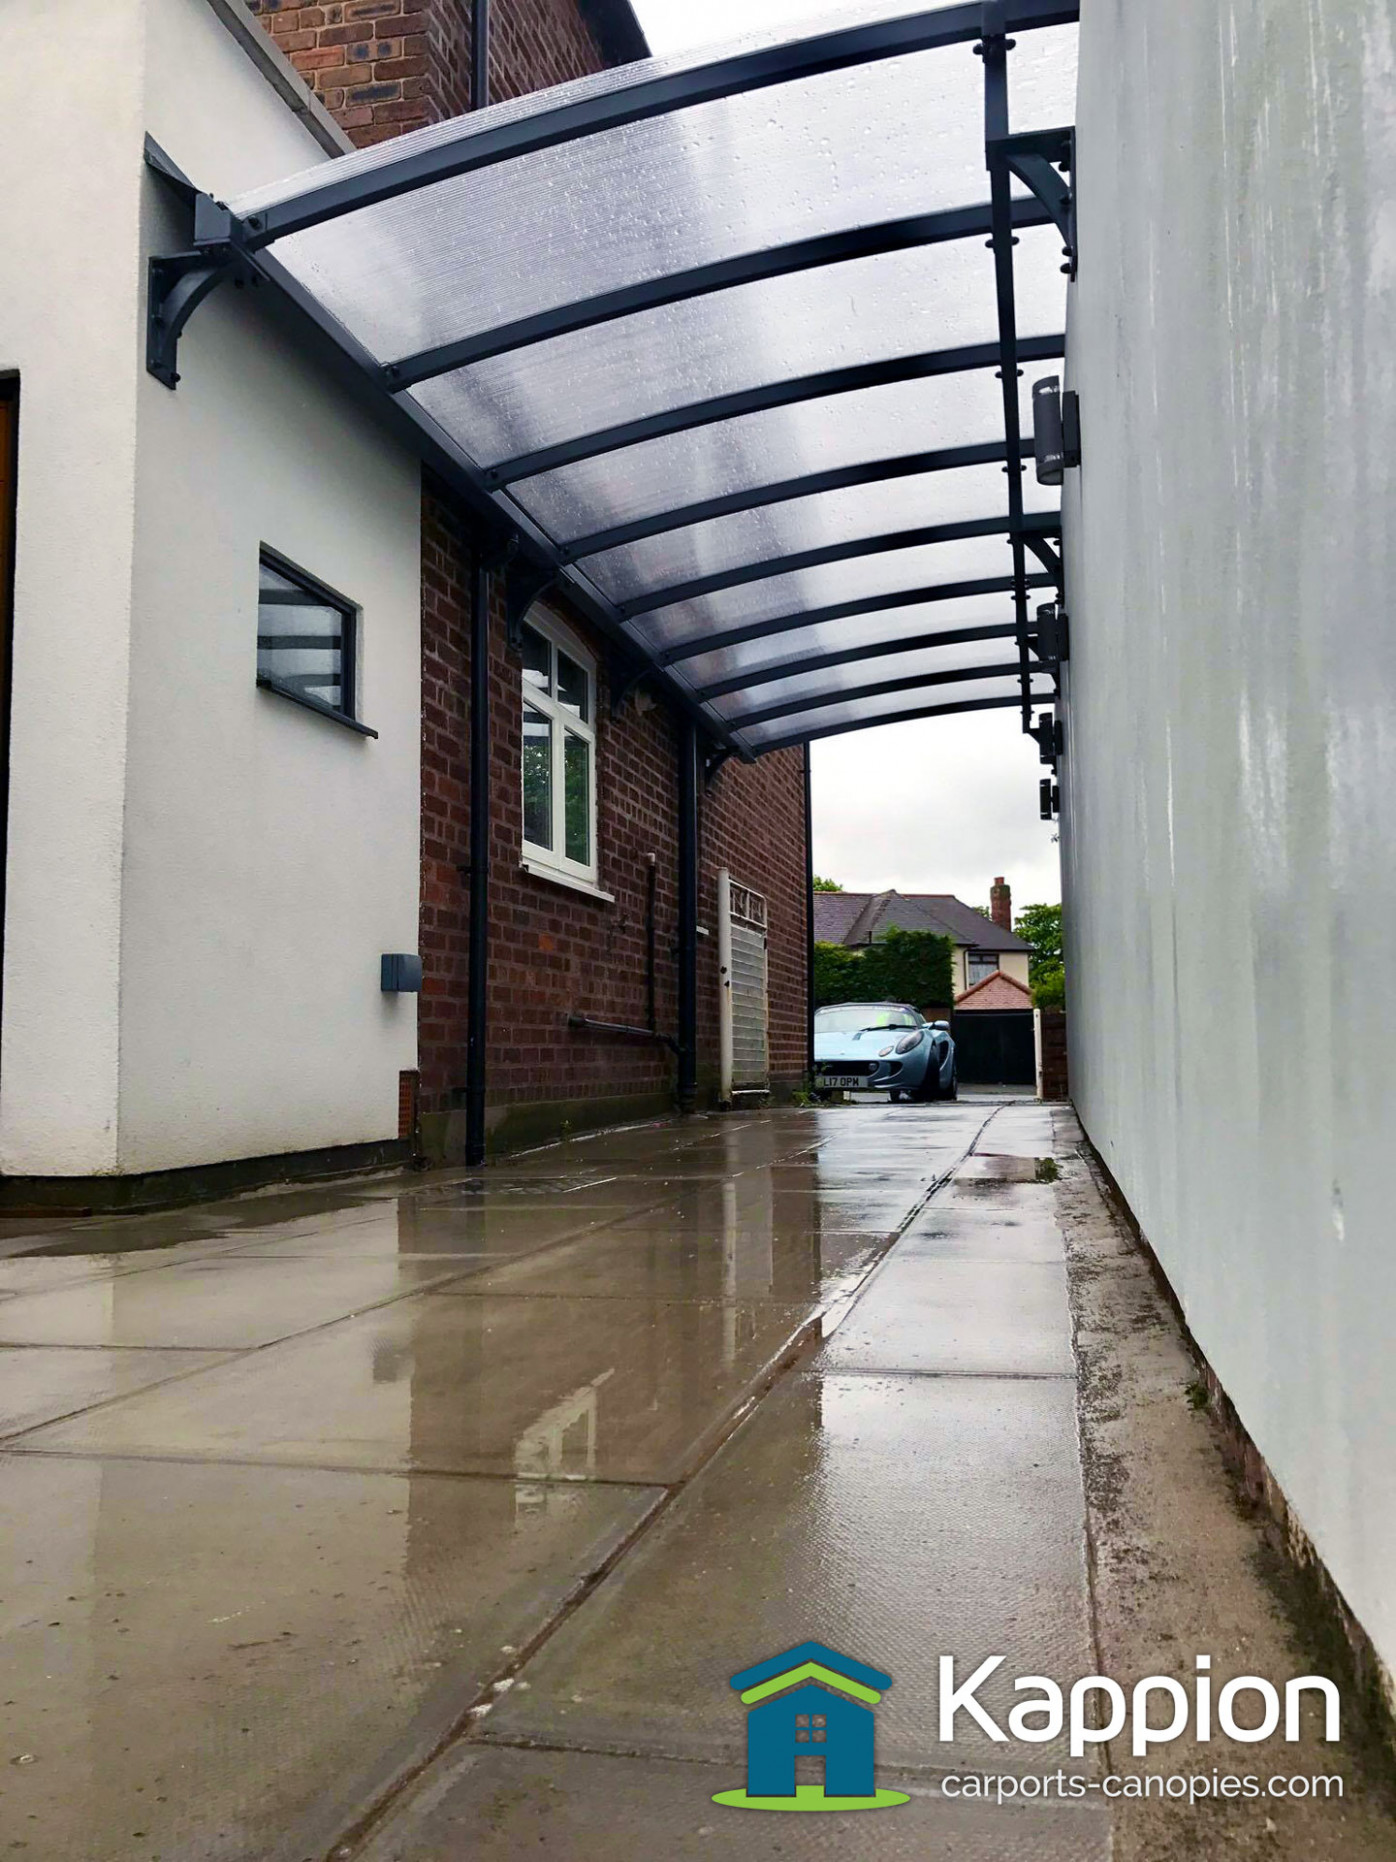 Wall Attached Carport Installed In Liverpool | Kappion ..